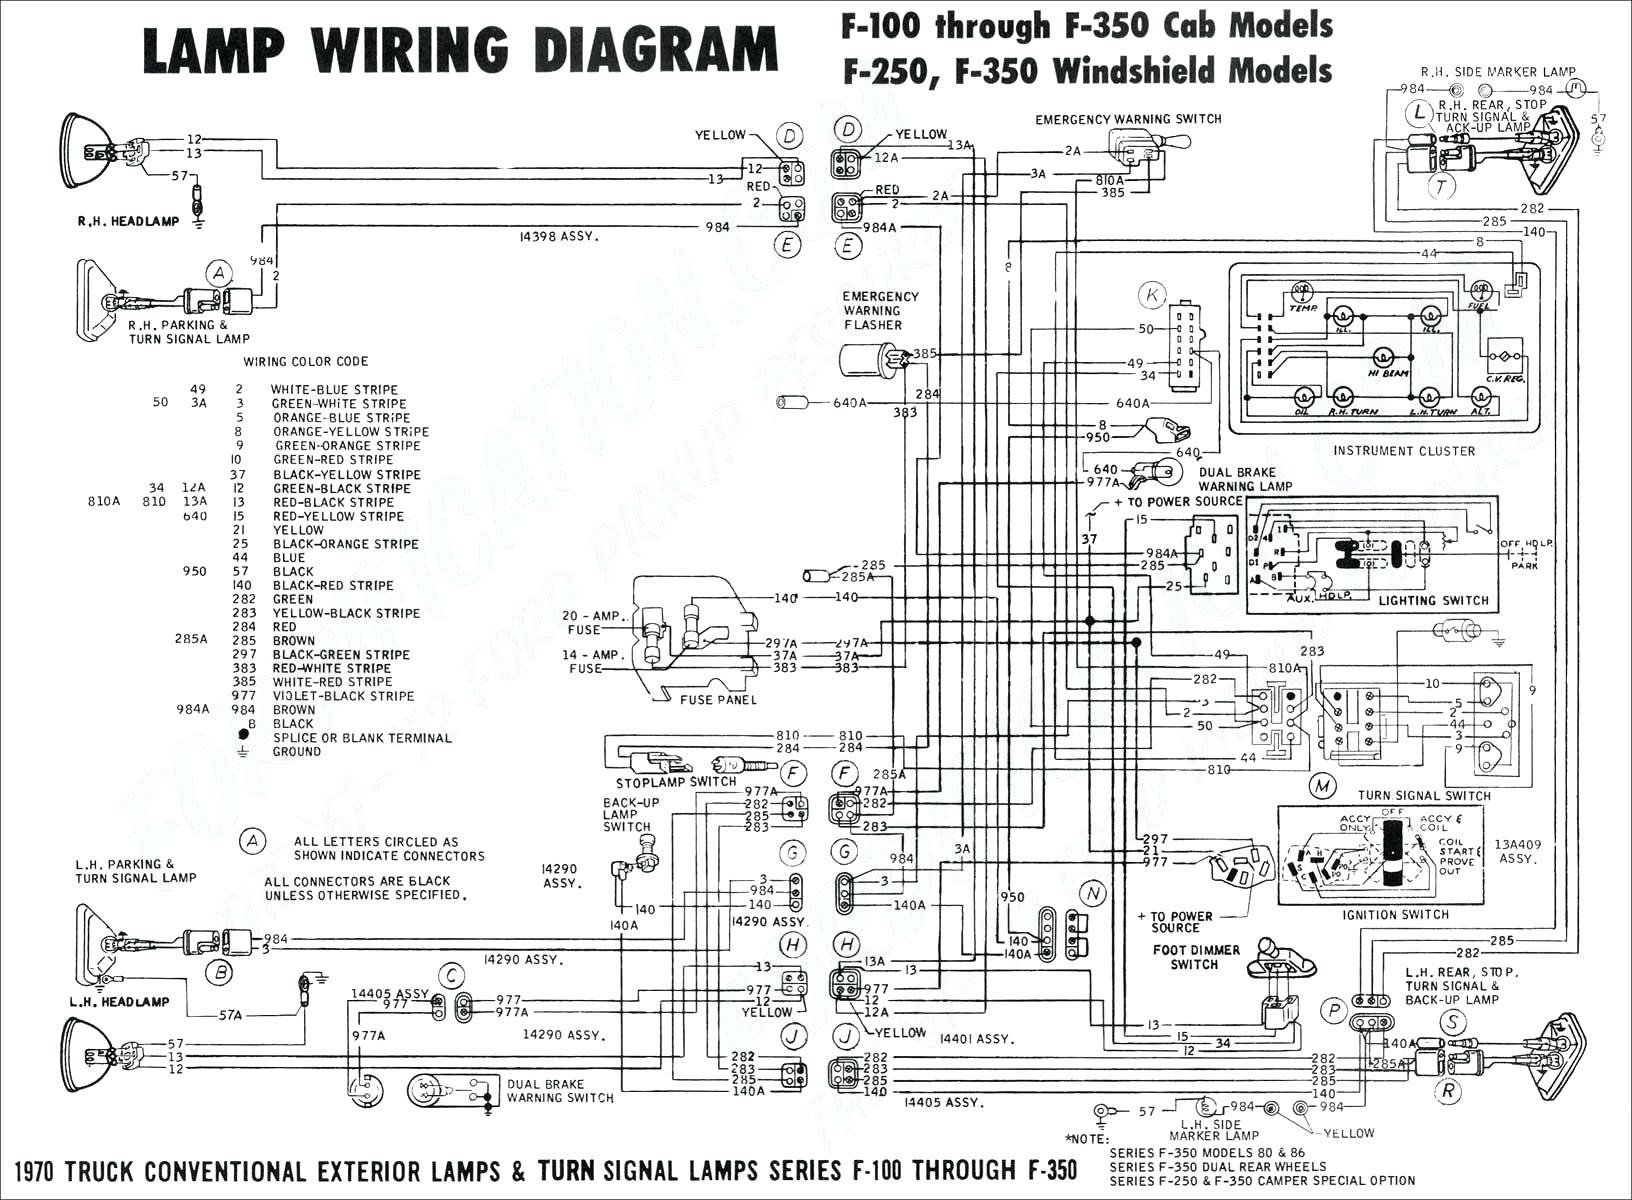 86 chevy truck alternator wiring diagram automotive relay f150 warning light library